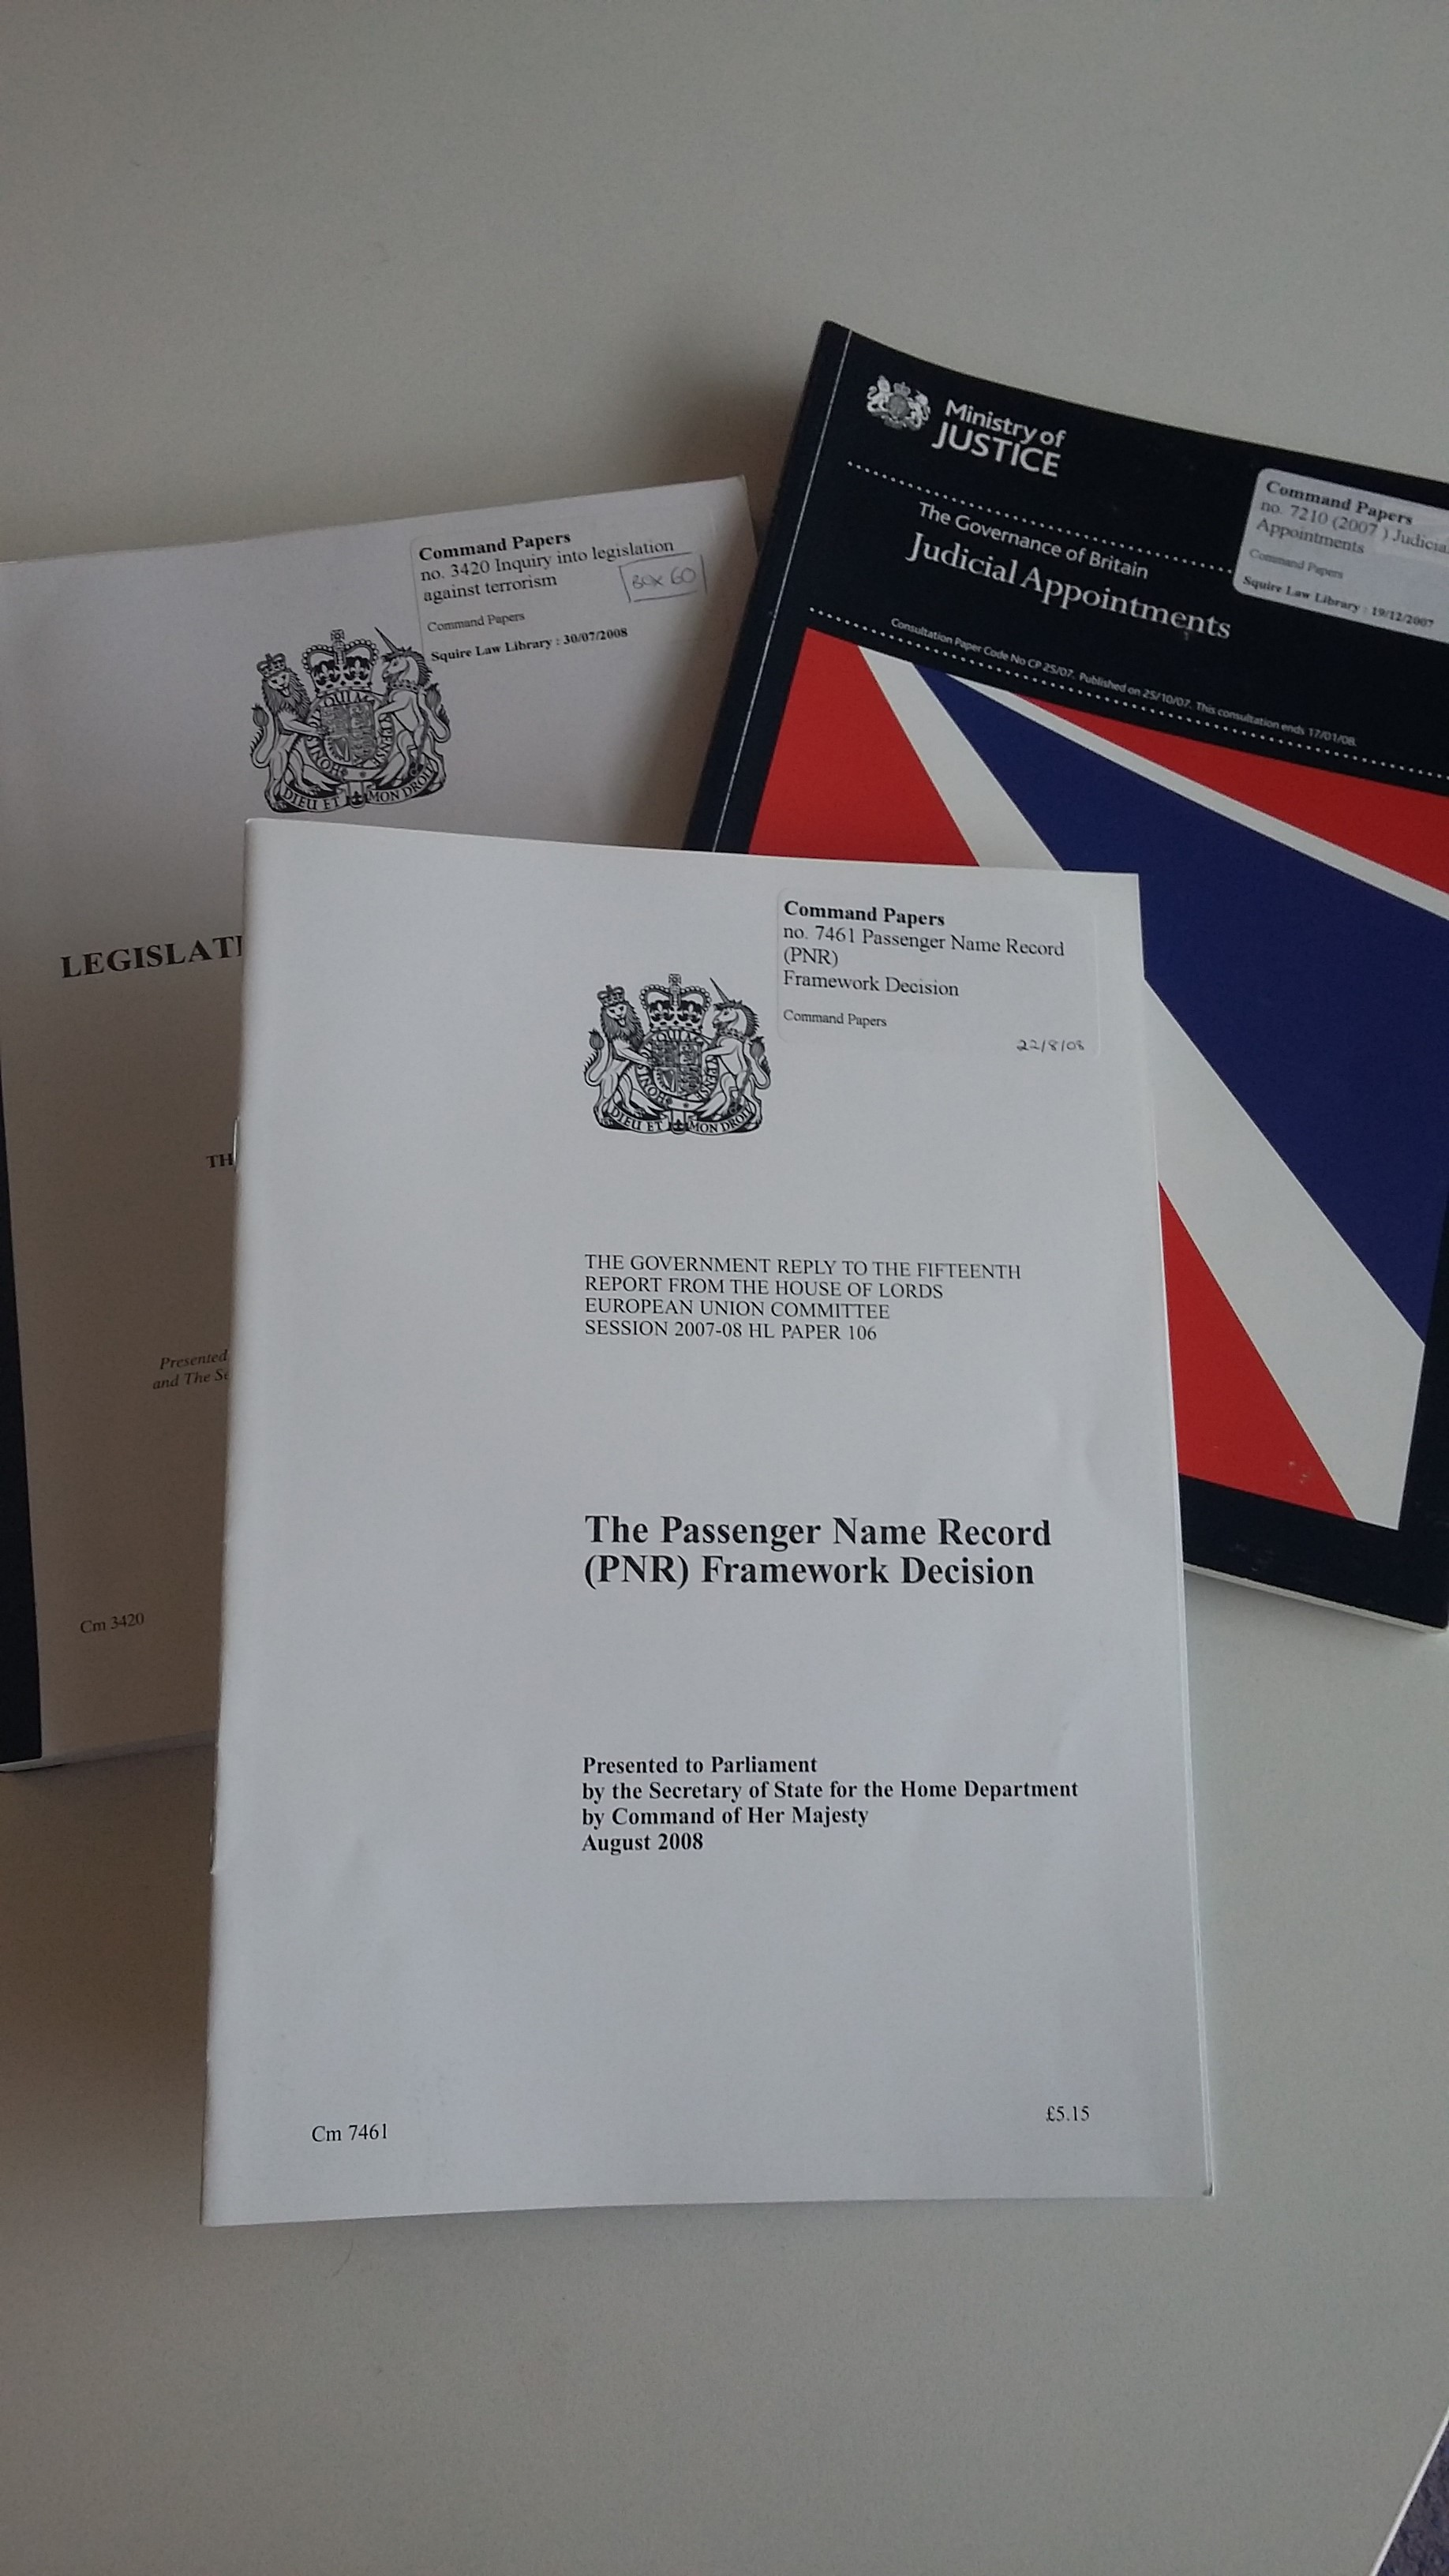 Photo of three parliamentary papers with varying covers on a desk.